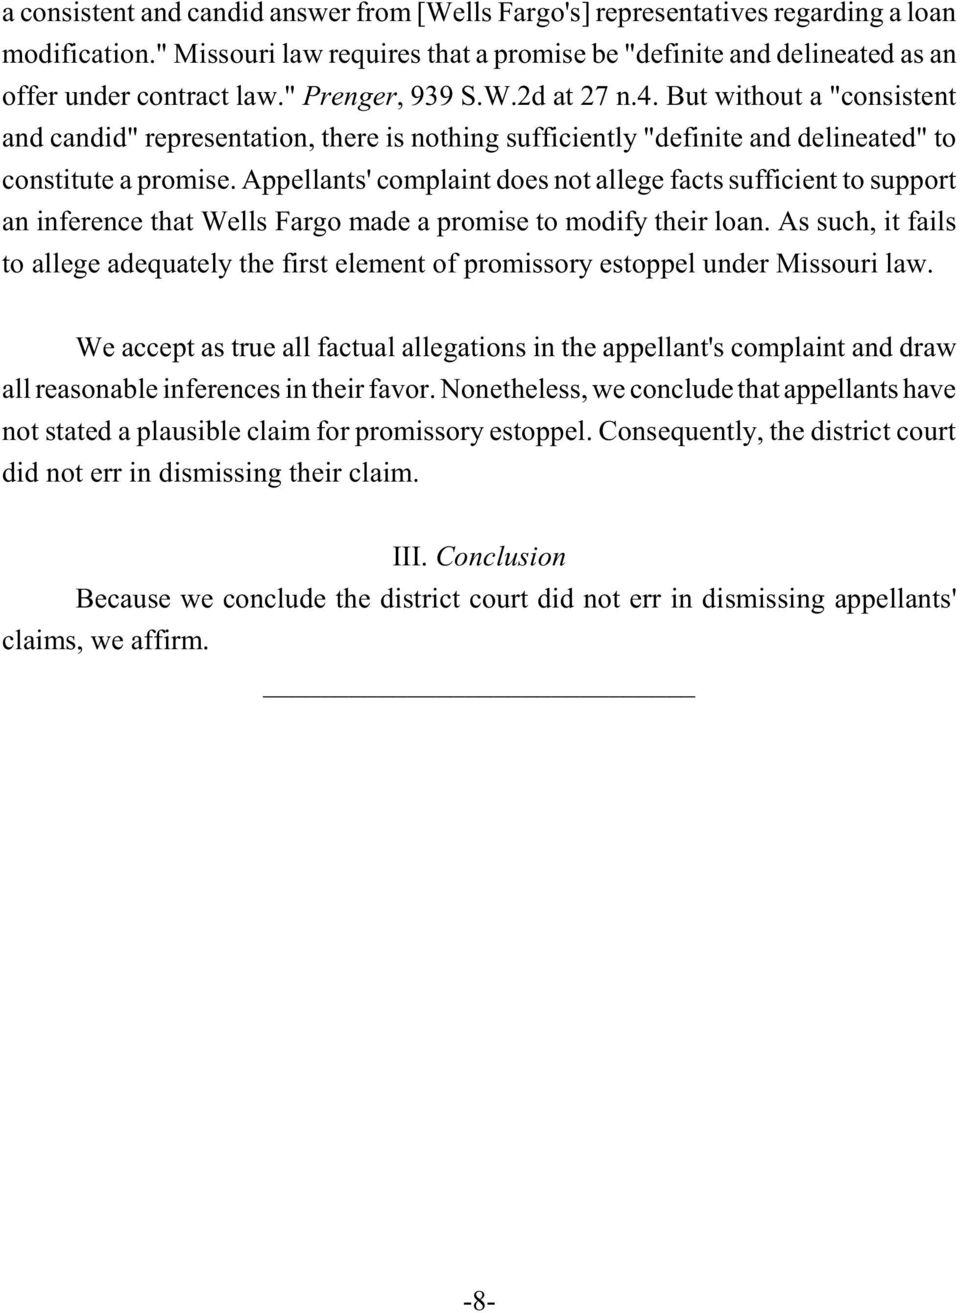 Appellants' complaint does not allege facts sufficient to support an inference that Wells Fargo made a promise to modify their loan.